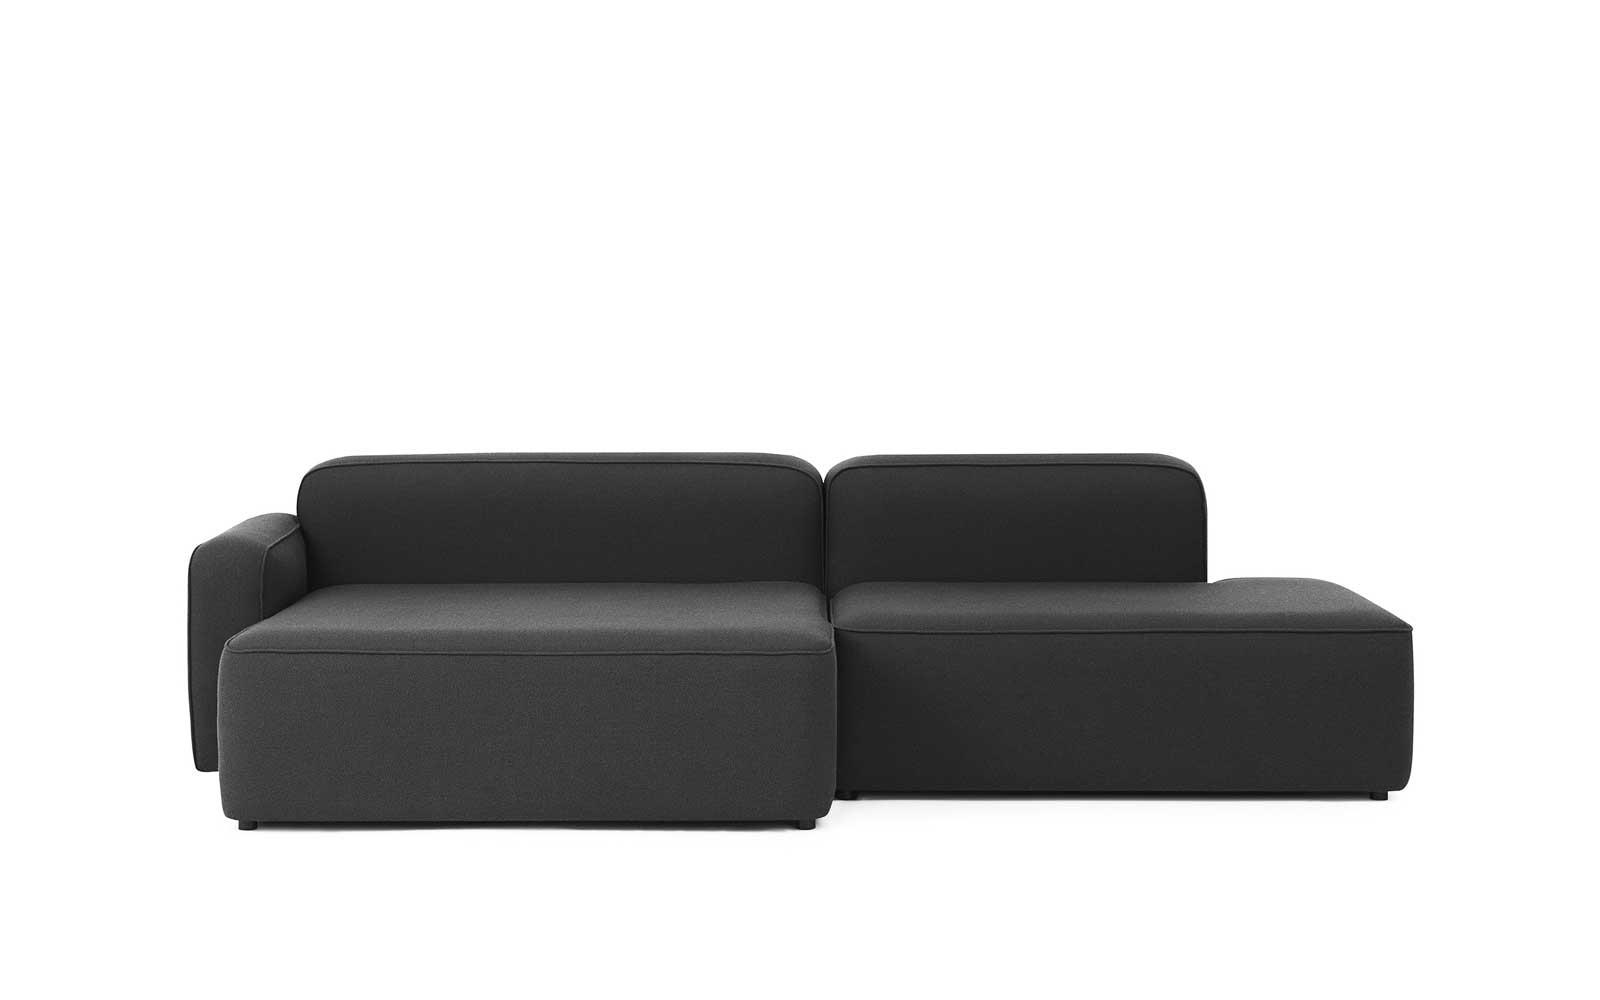 Rope Sofa Chaise Longue left Fame